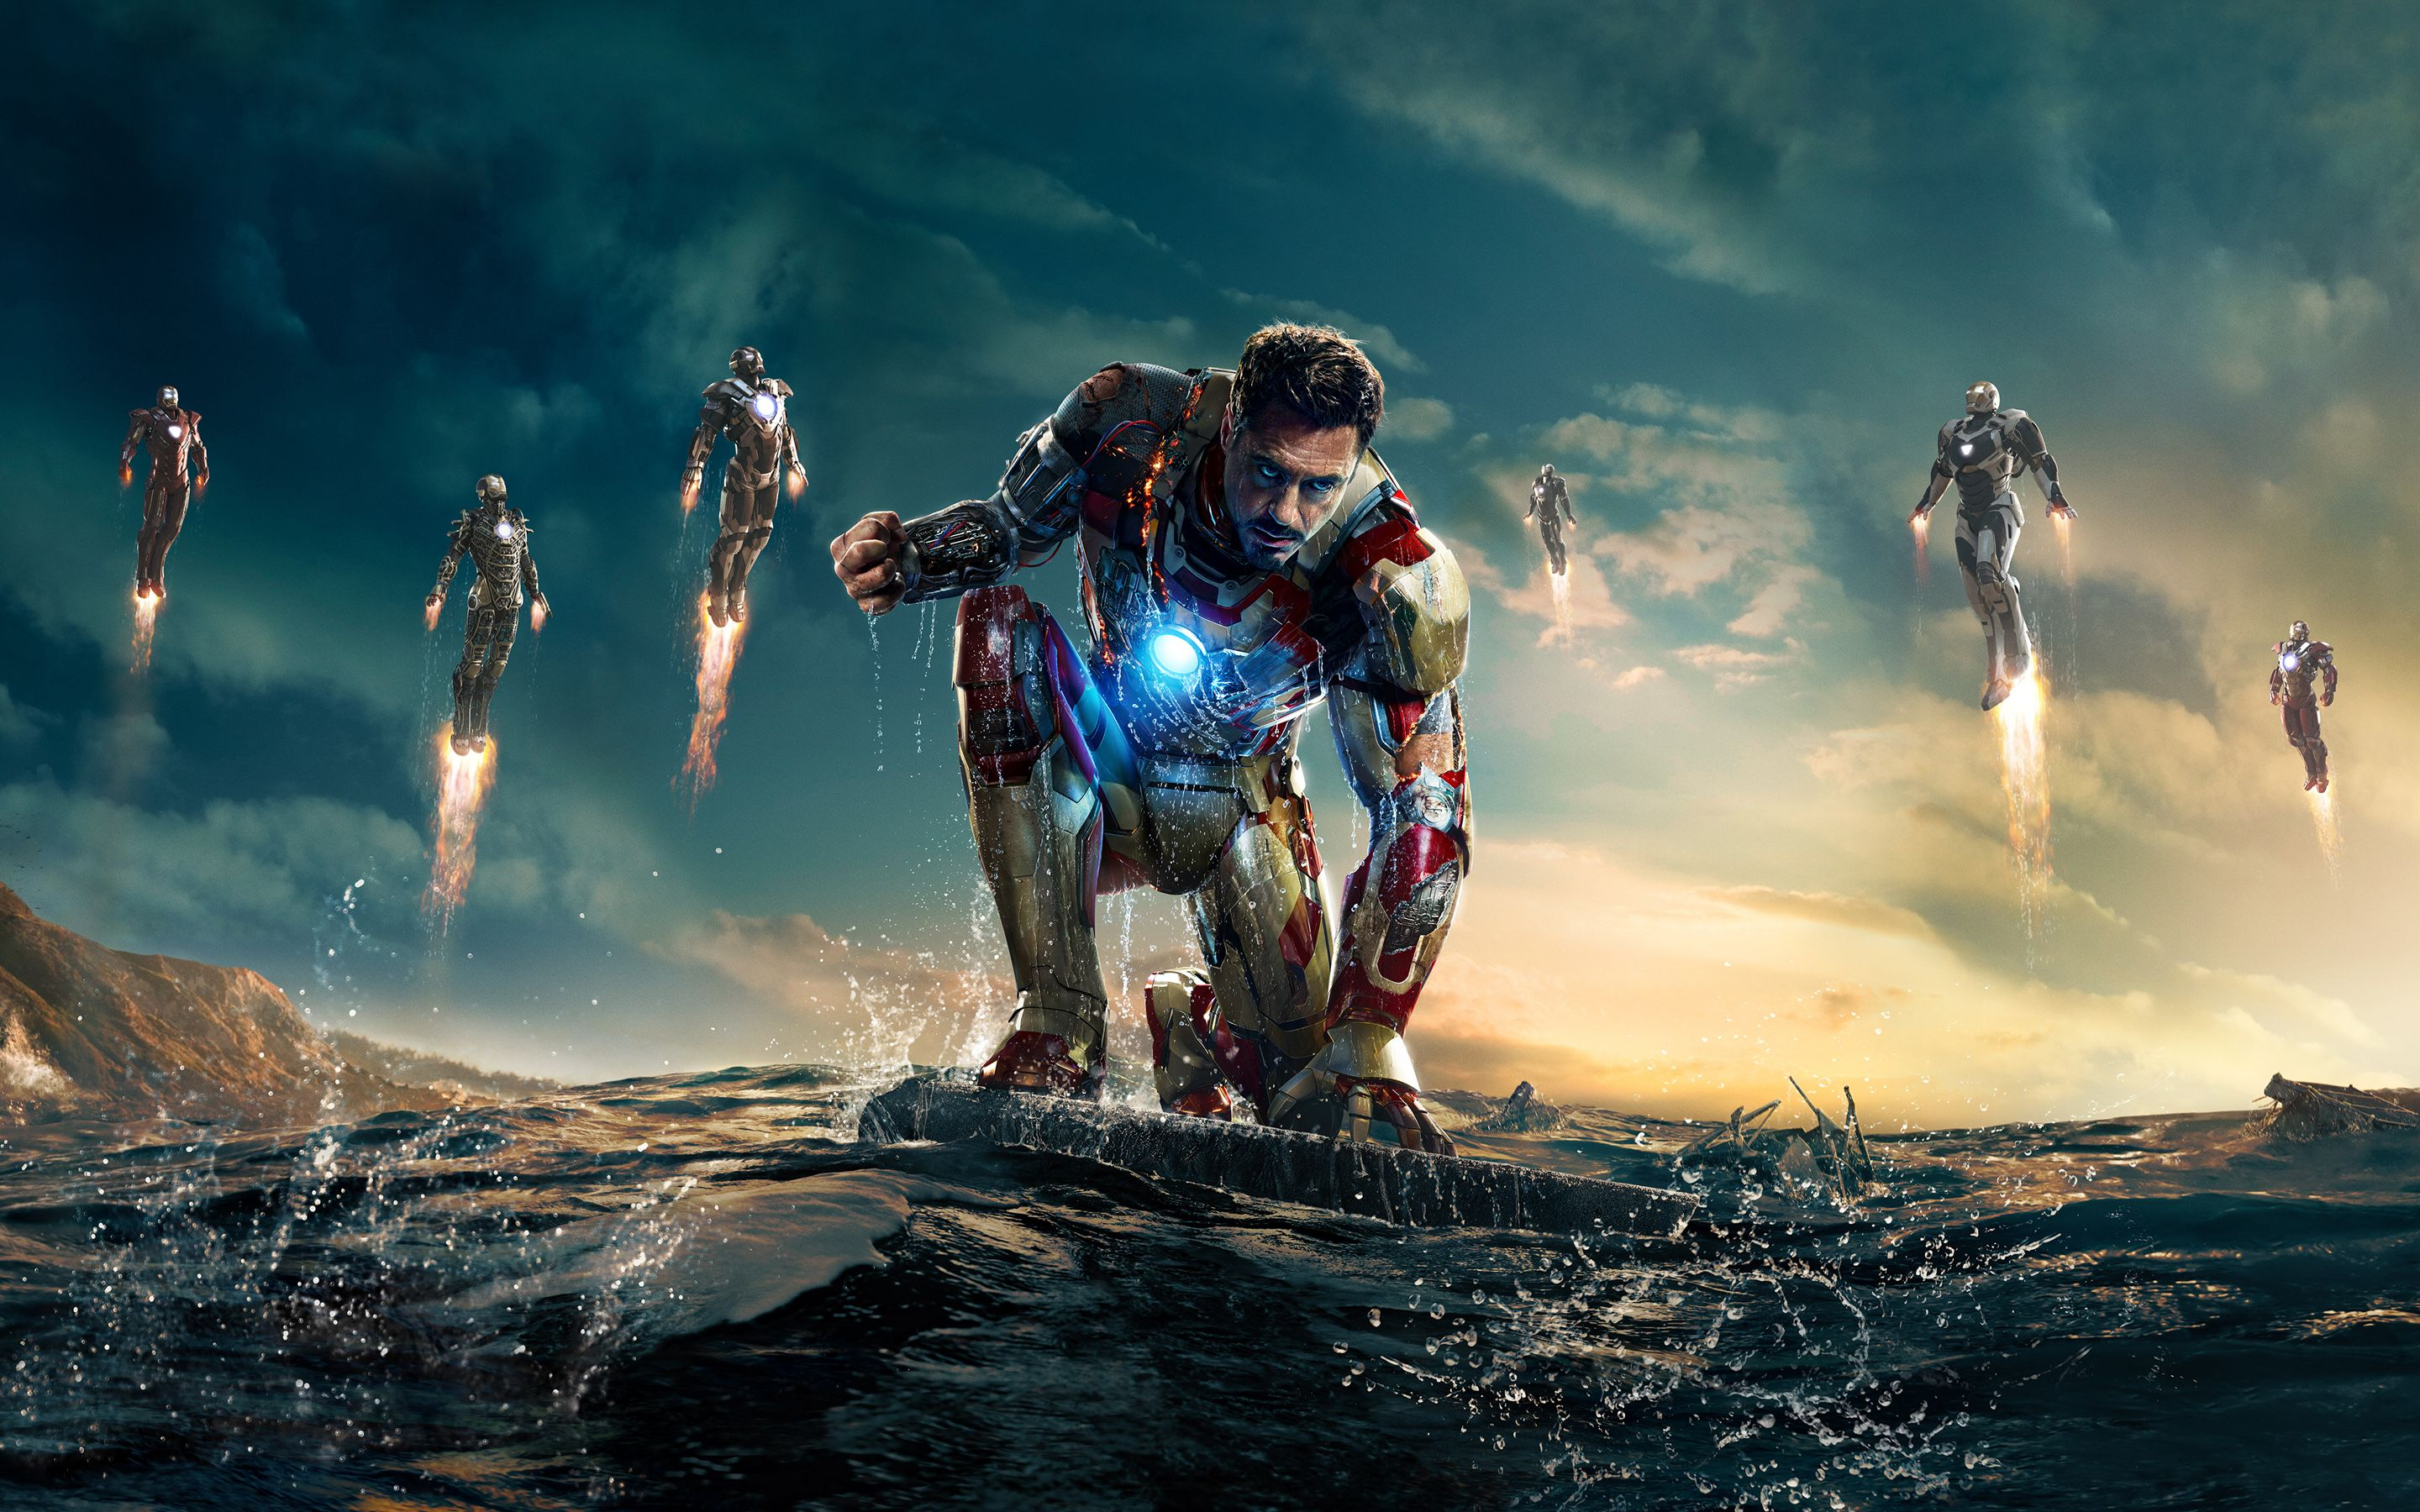 Iron Man Wallpaper High Quality Resolution In 2020 Iron Man